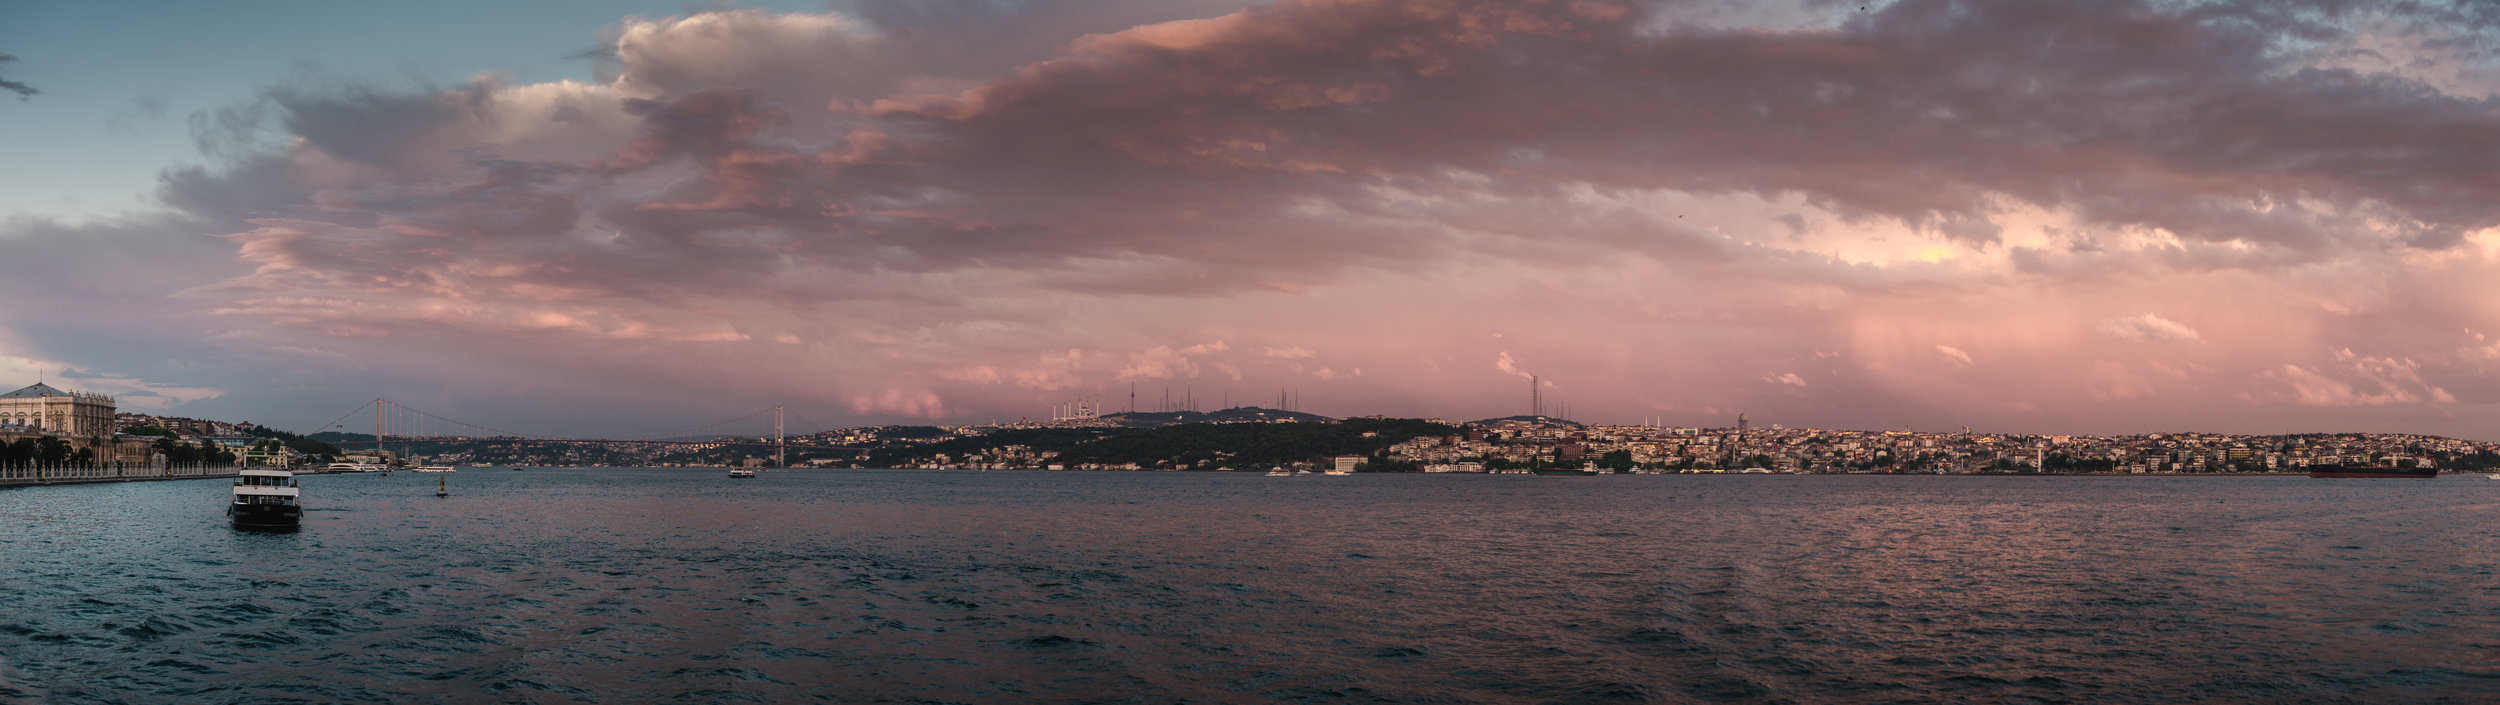 Pink dominated the sky most nights, and I loved how the blue sea was tinted with pink as well. Here you see the European continent just hanging on the left of the image, and the lit Bosphorus Bridge reaches over to the asian continent.